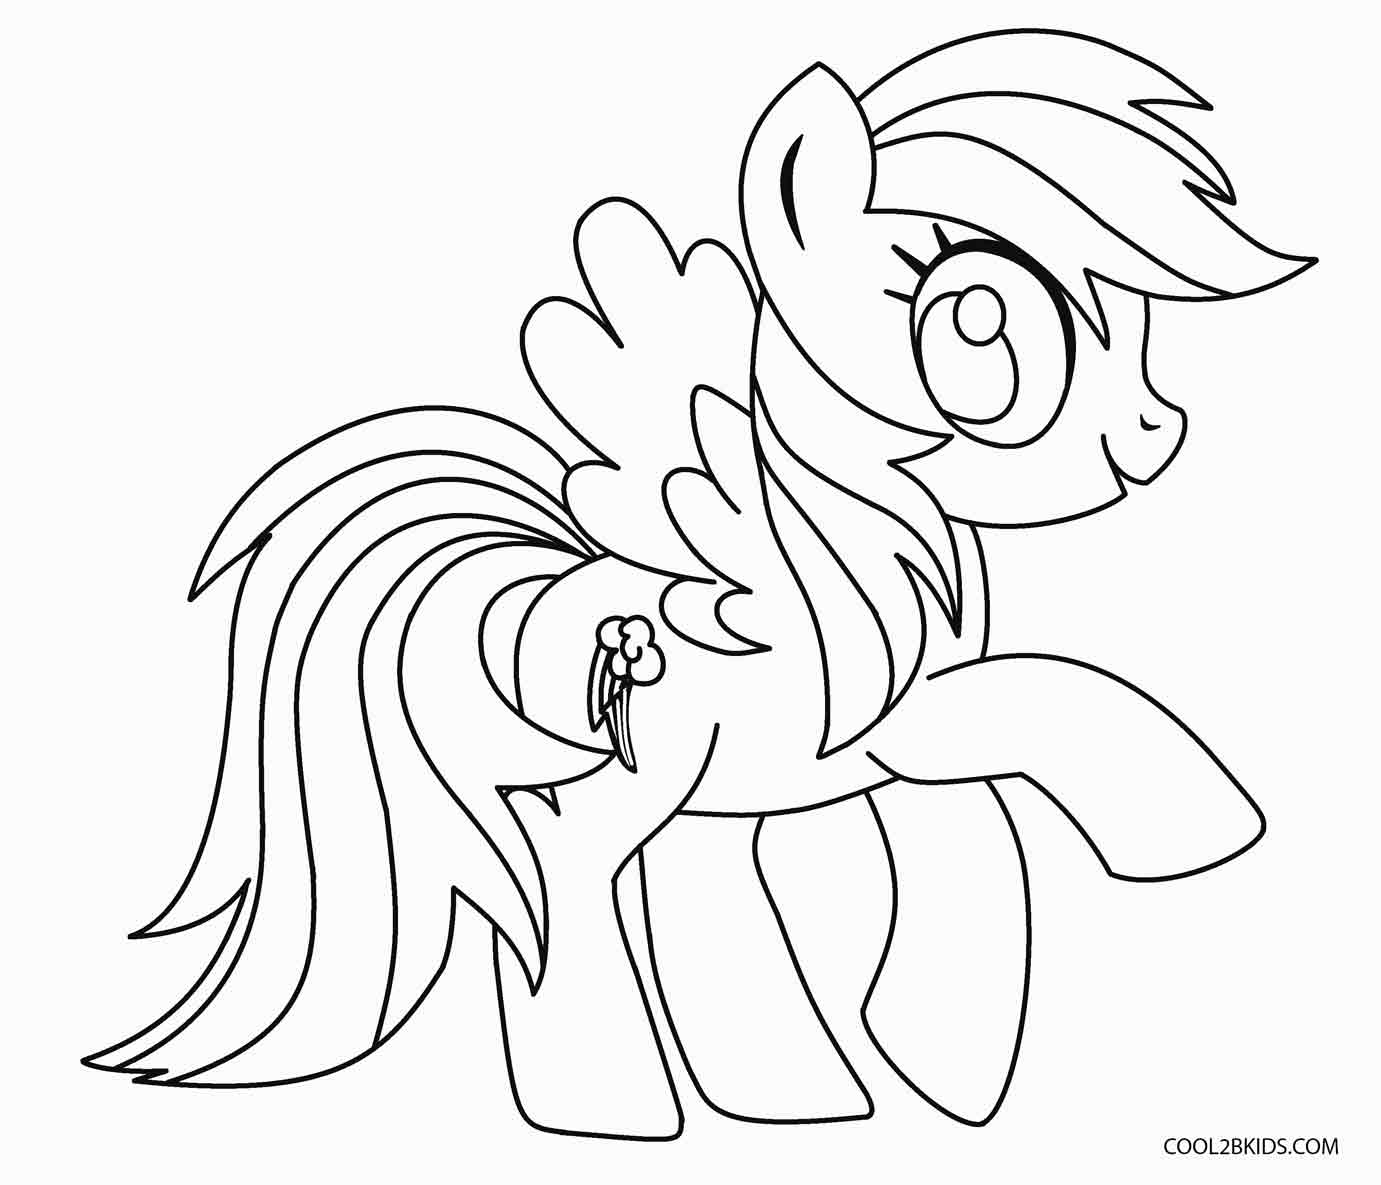 mlp printables my little pony coloring pages print and colorcom mlp printables